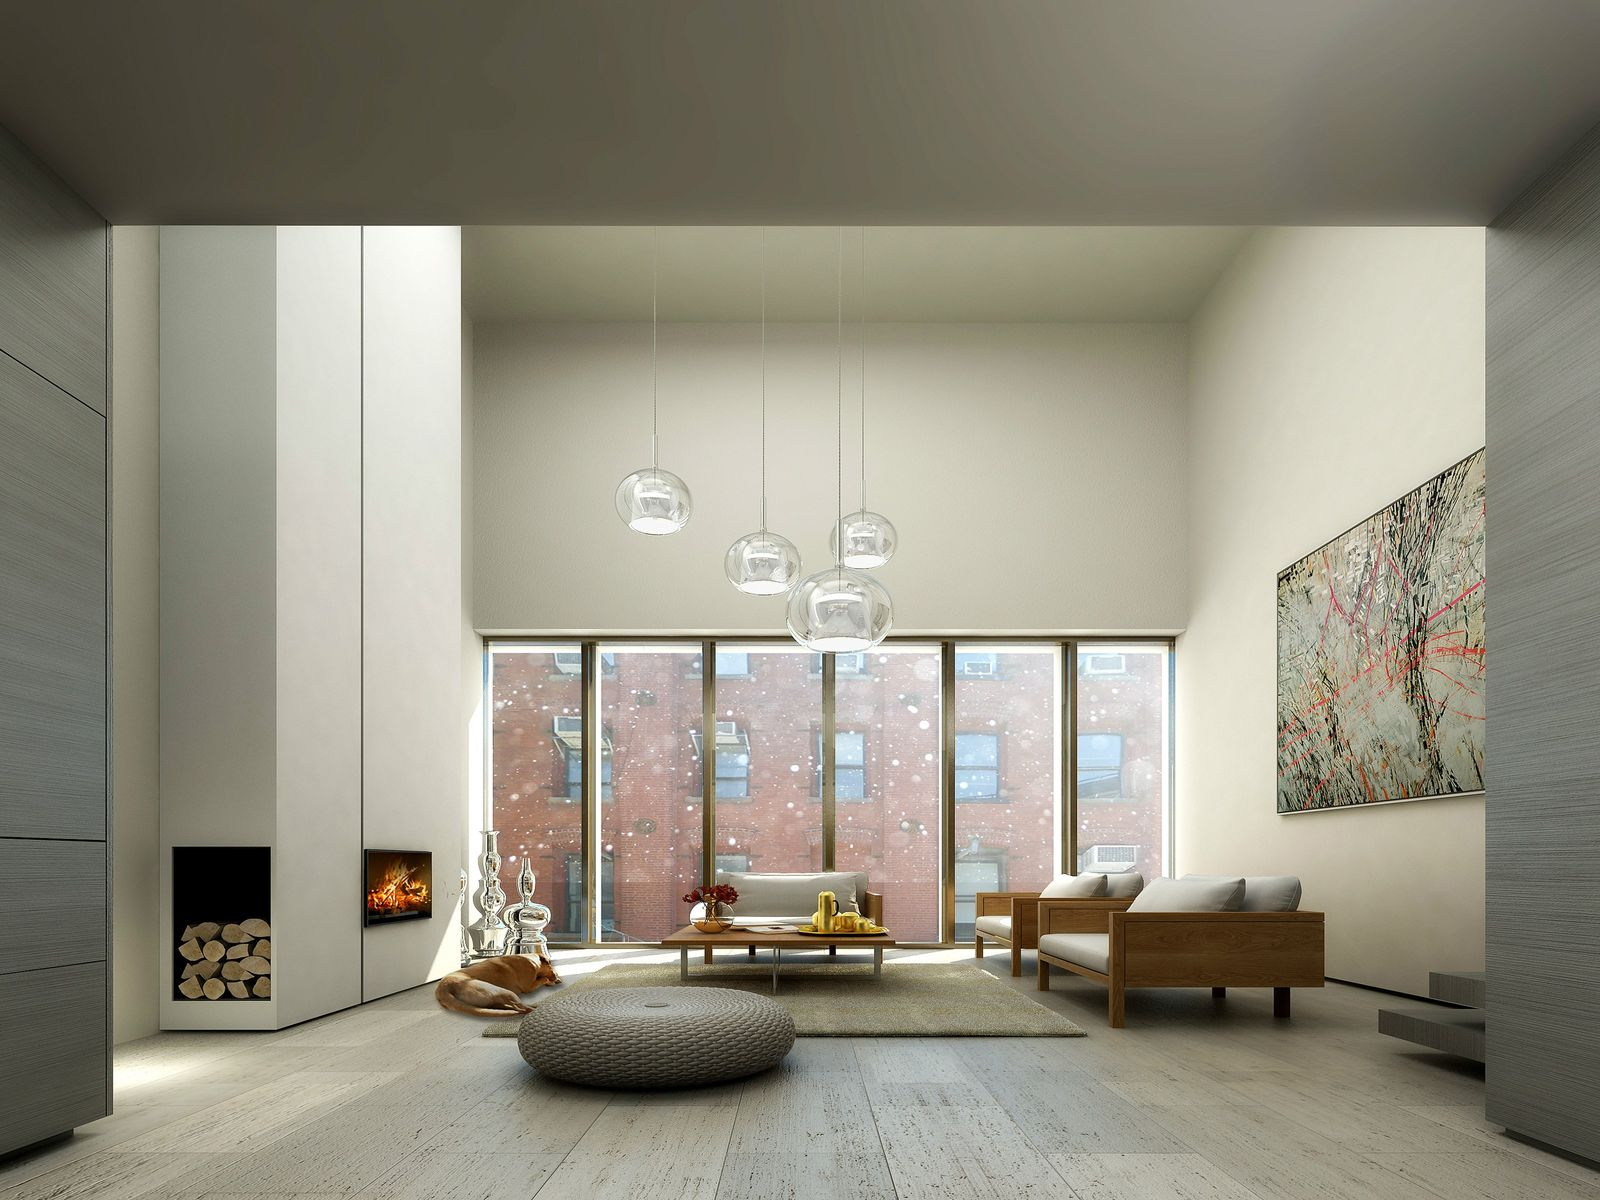 Dumbo's Contemporary Townhouses, Brookyln NY Townhouse - New York City Real Estate